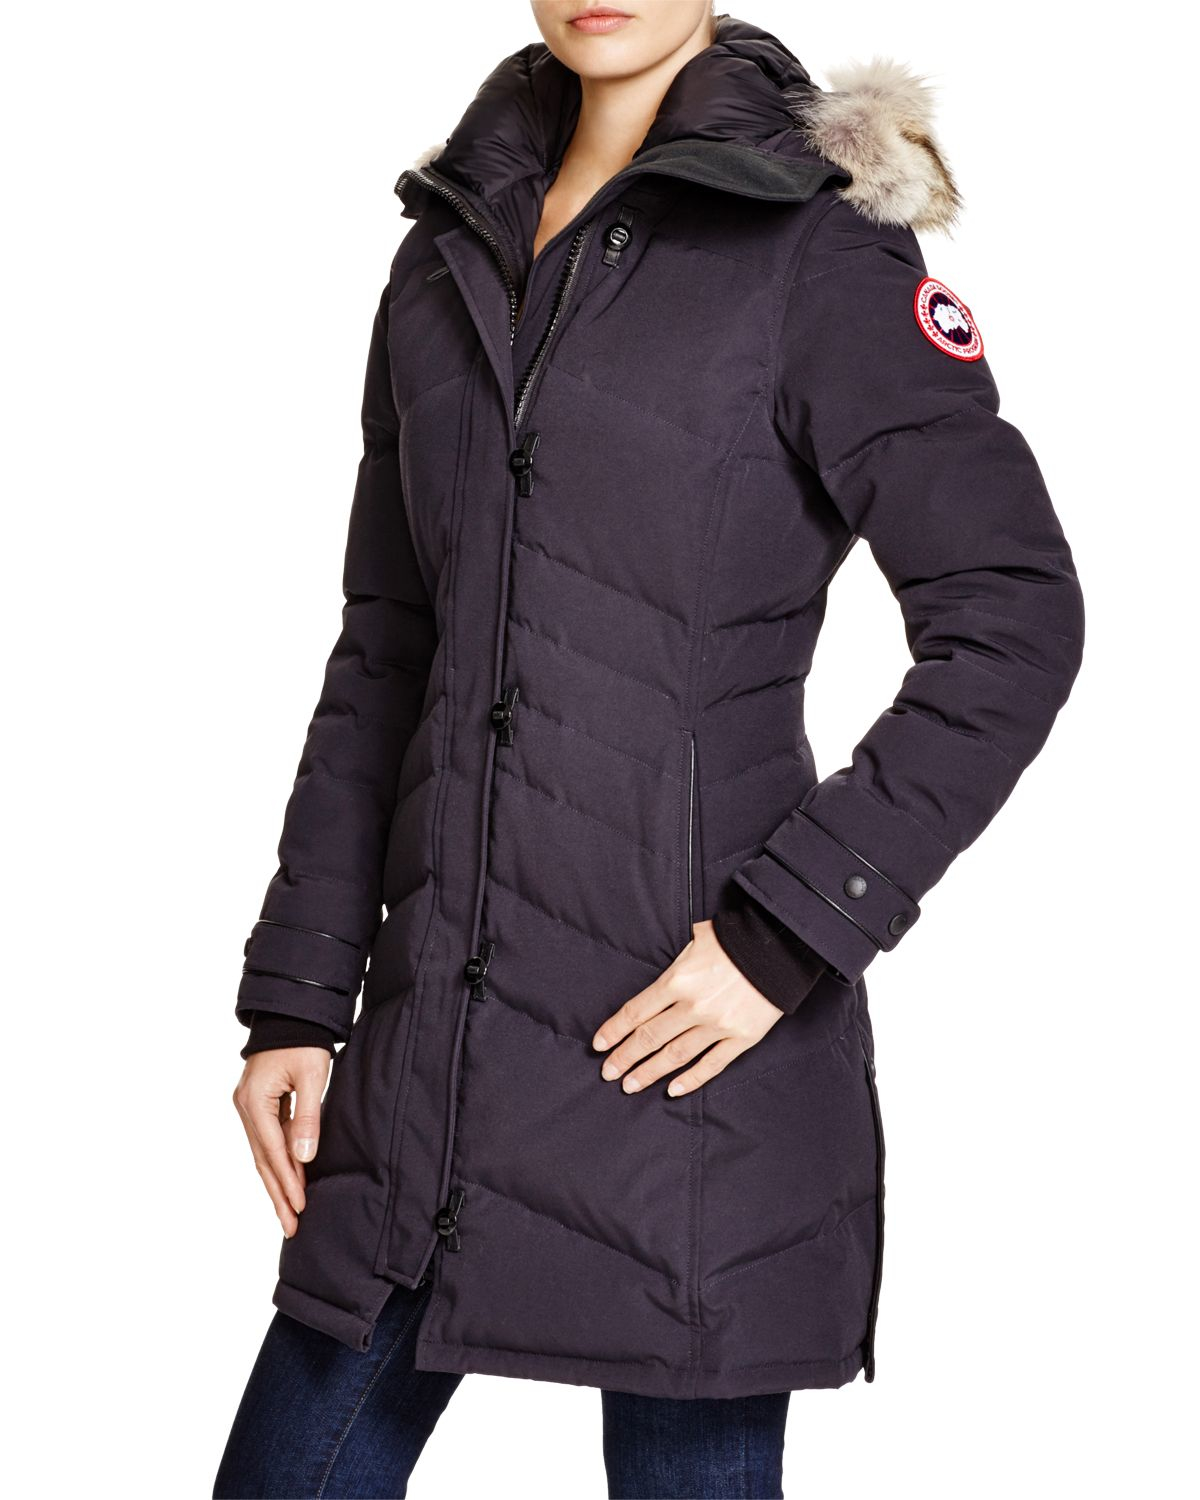 Canada Goose kensington parka online price - The Best Canada Goose Vs Swan Secure Shopping Online